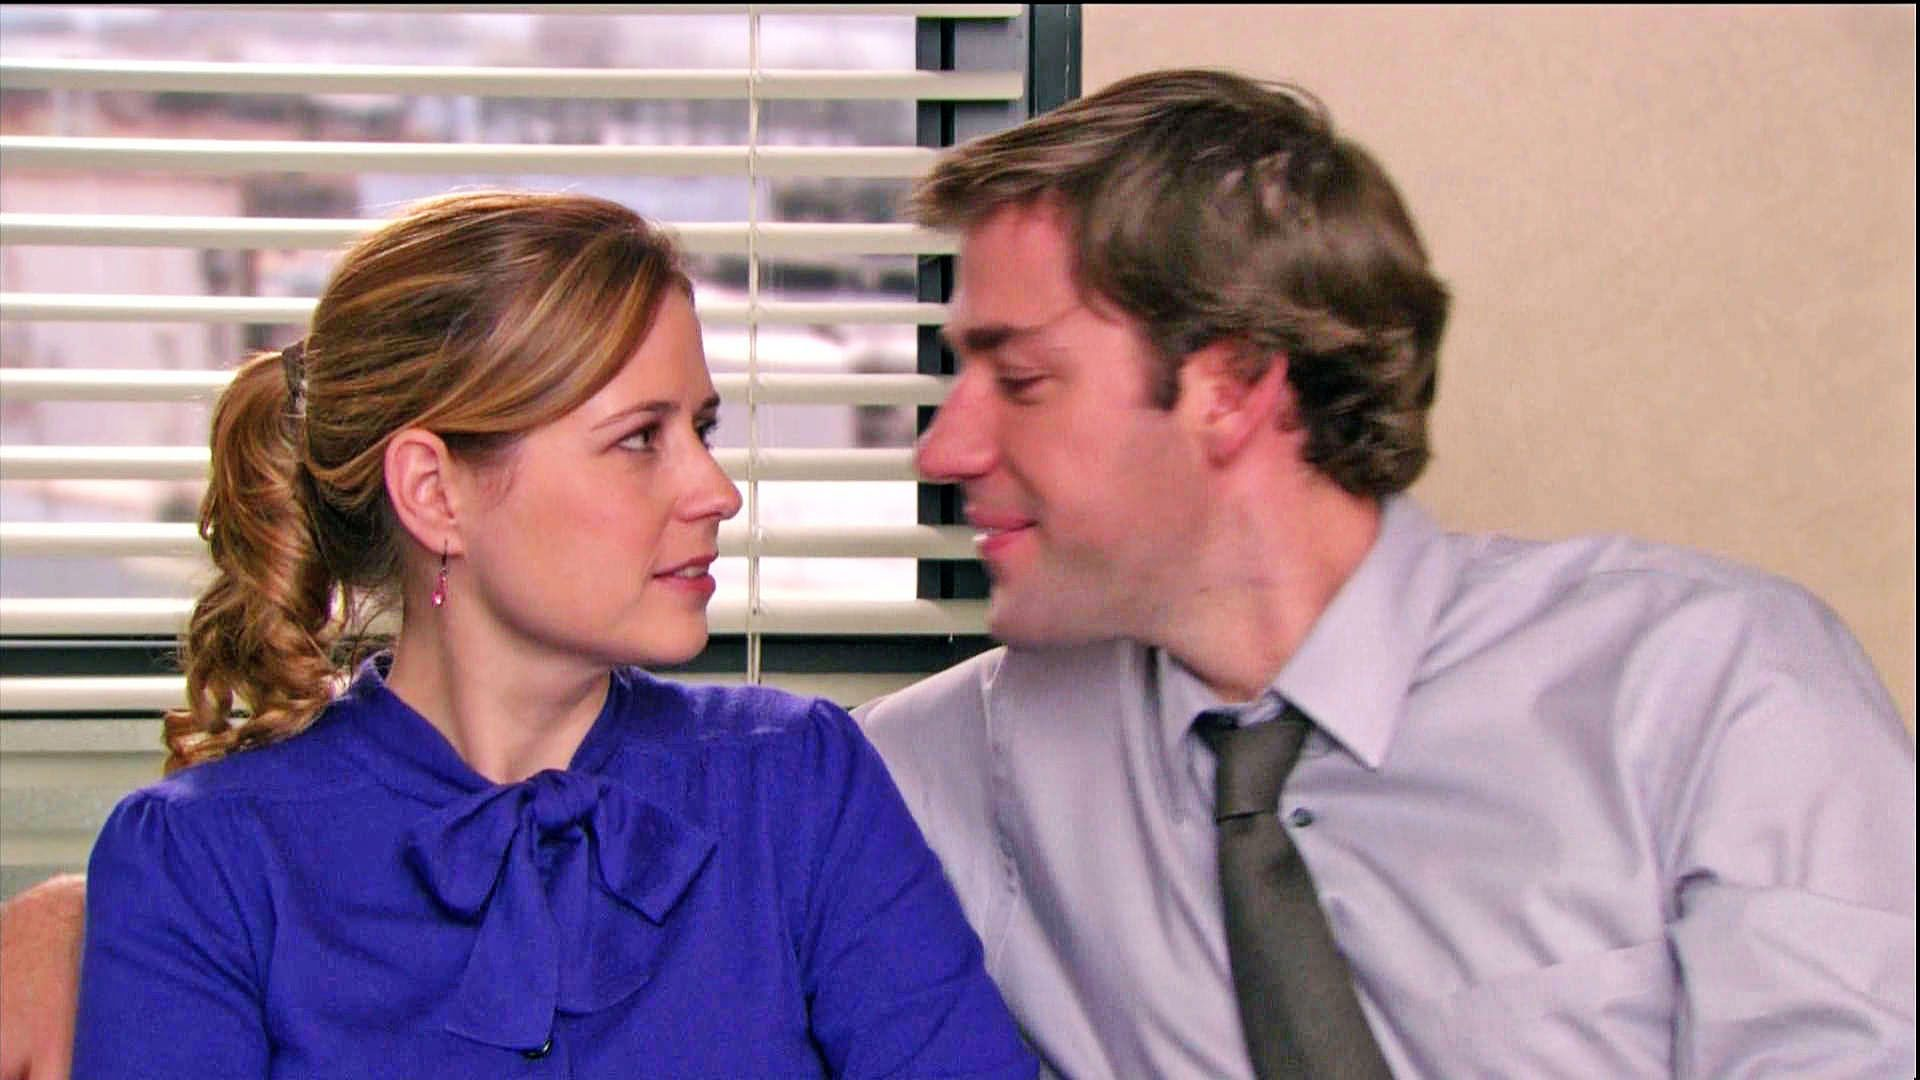 the office's jenna fischer confirms that baby no. 2 is on the way